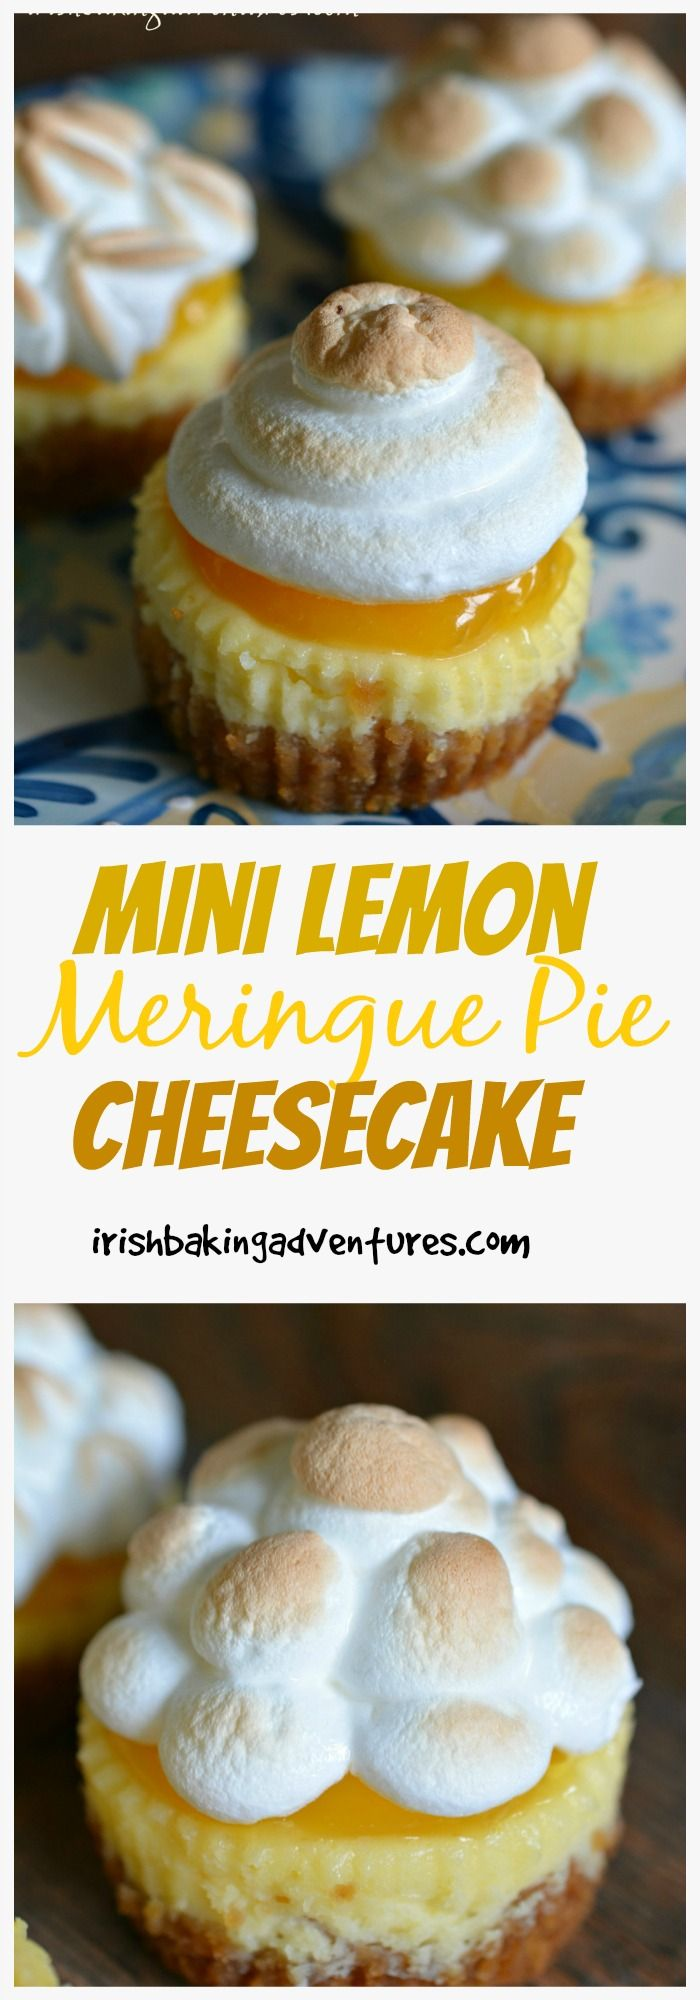 Mini Lemon Meringue Pie Cheesecake. A scrumptious super easy cheesecake with all the deliciousness of a Lemon Meringue Pie. Nostalgia at its best